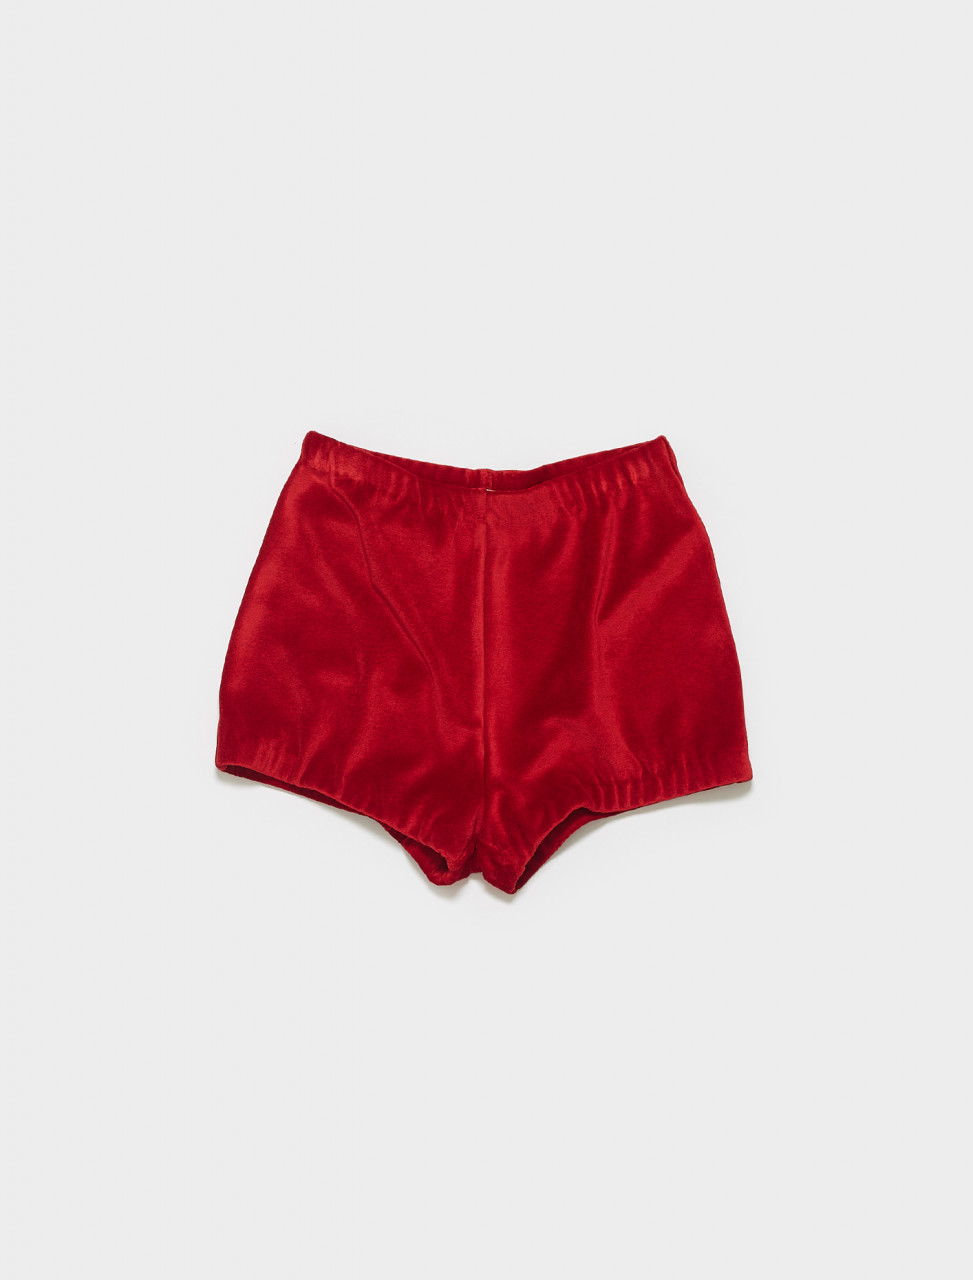 MP1454-F0011 MIU MIU CHENILLE SHORTS IN RED